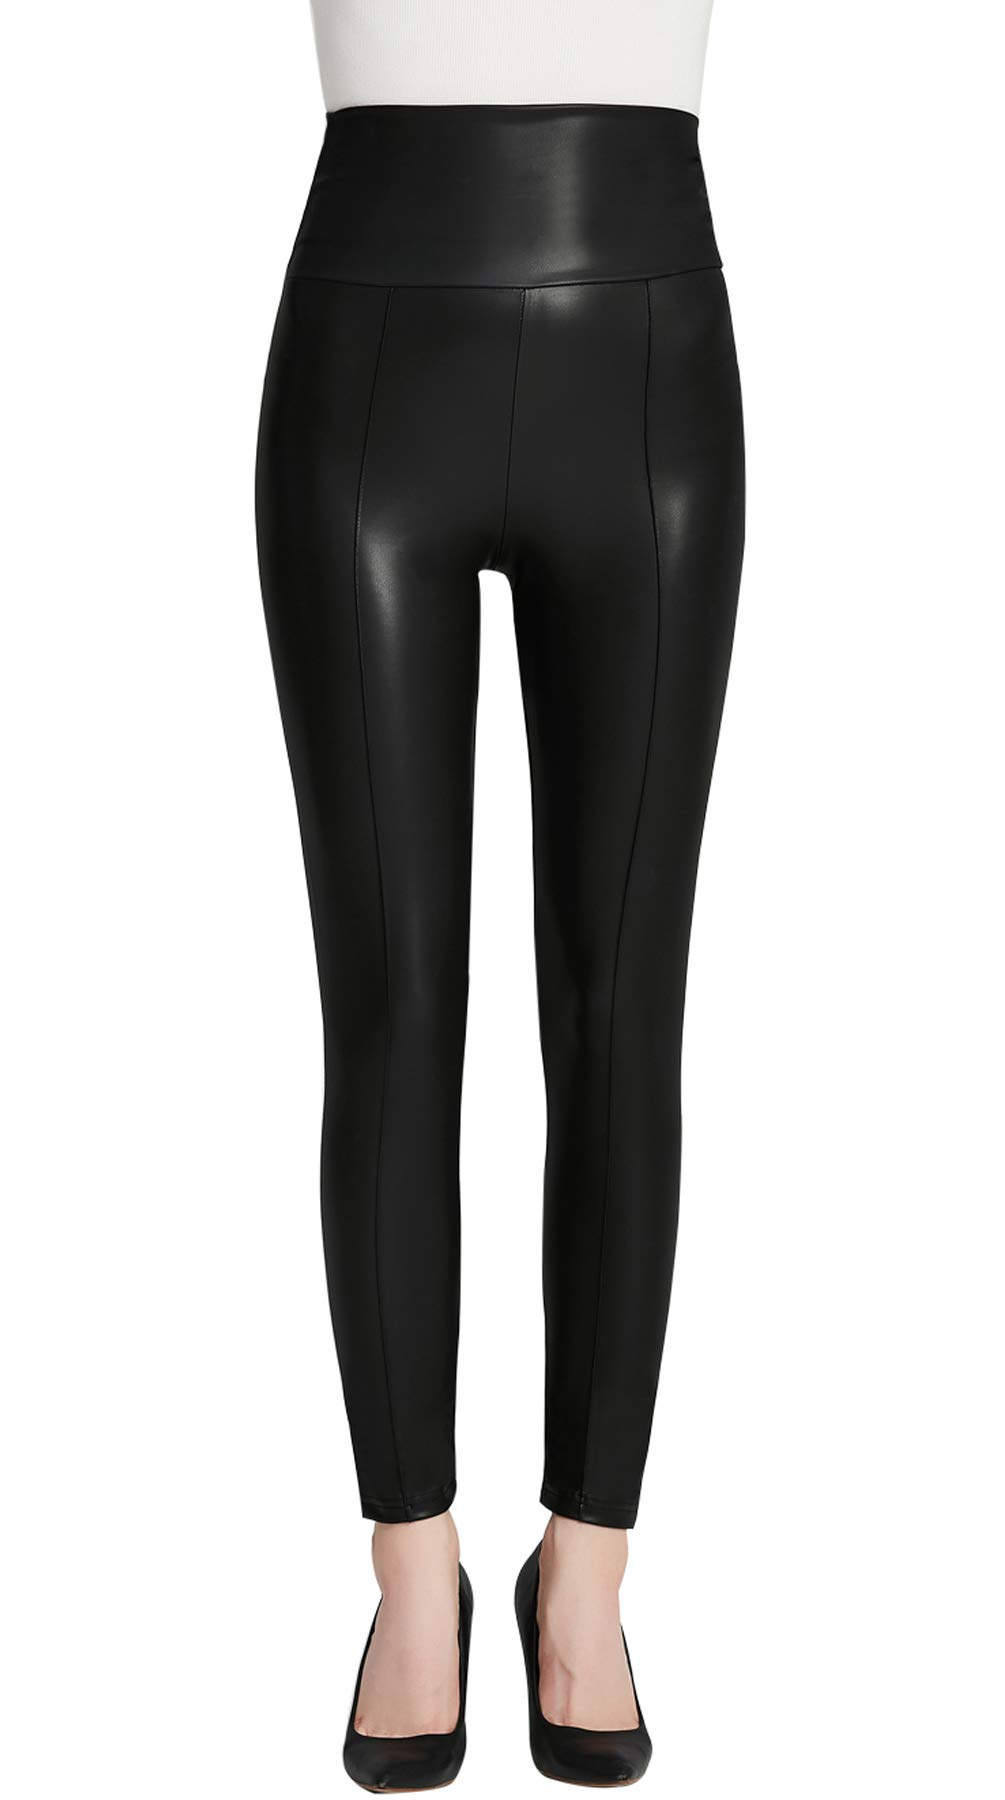 Everbellus High Waisted Faux Leather Leggings for Women Sexy Black Leather Pants X-Large by Everbellus (Image #2)